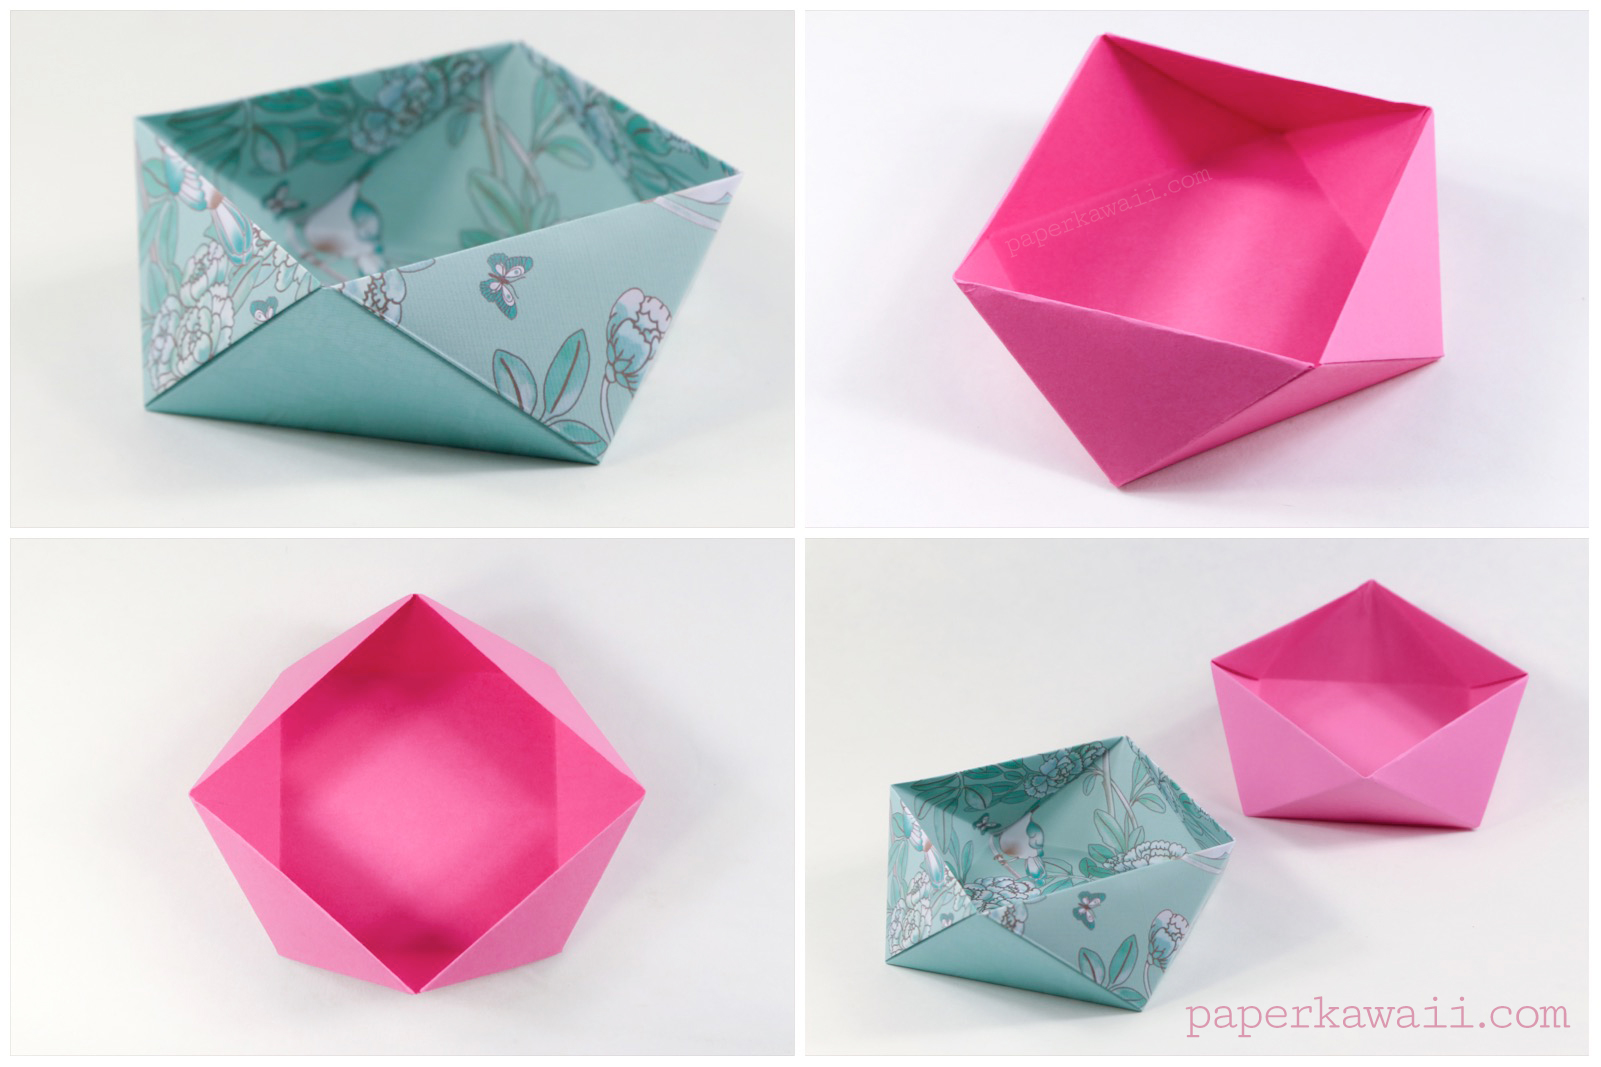 Traditional Origami Square Bowl / Box Instructions - photo#42